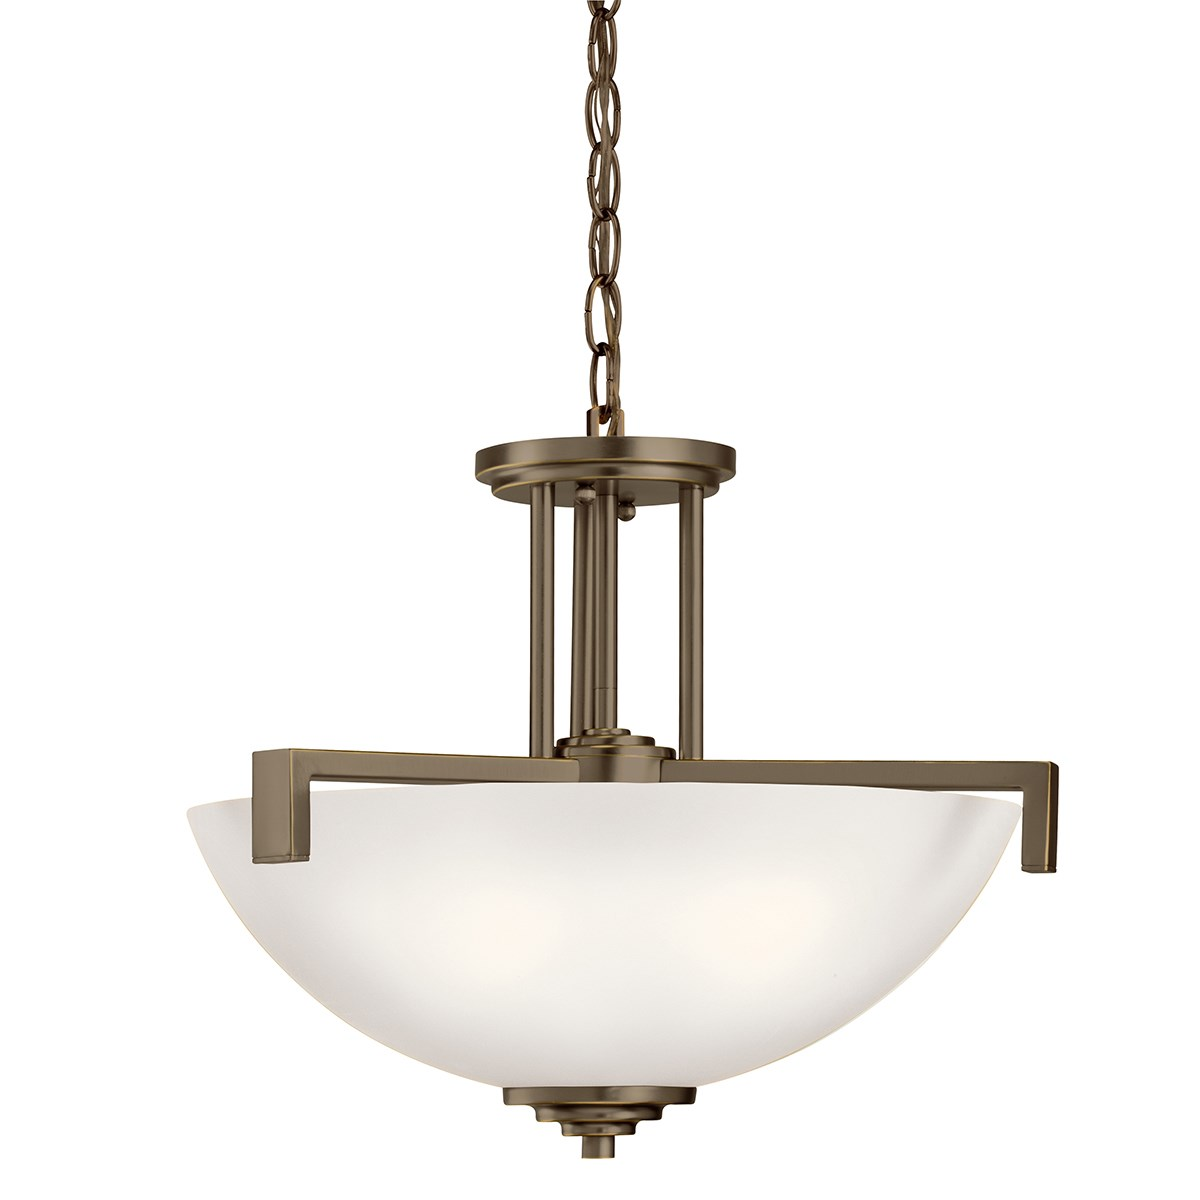 Eileen 3 Light Convertible Pendant with LED Bulbs Olde Bronze®